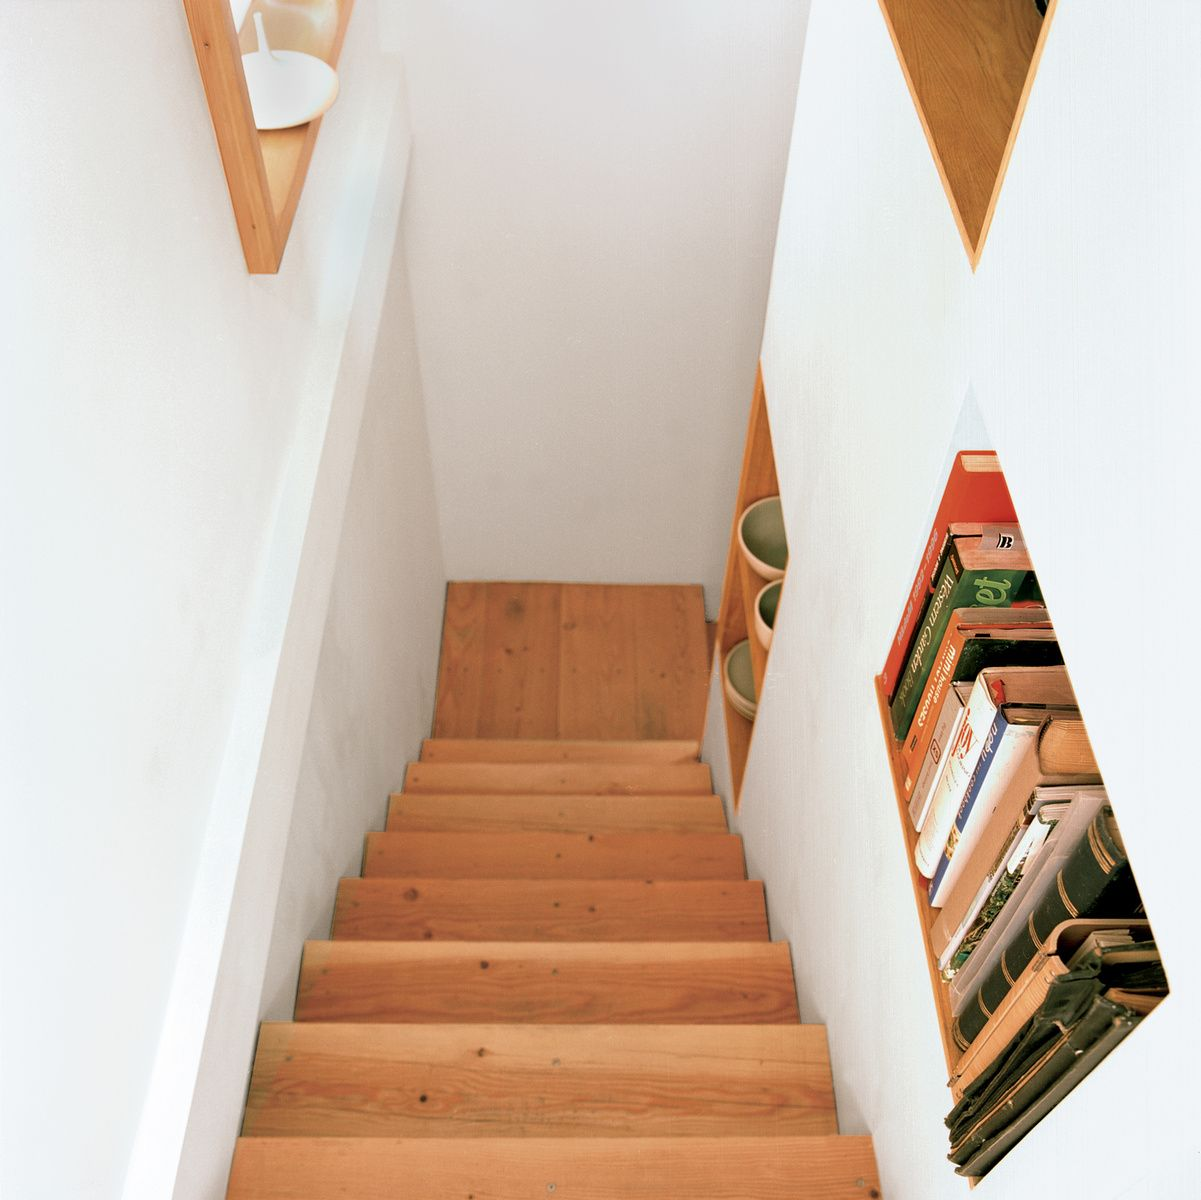 Inspirational Stairs Design: Inspiration For The New Space.